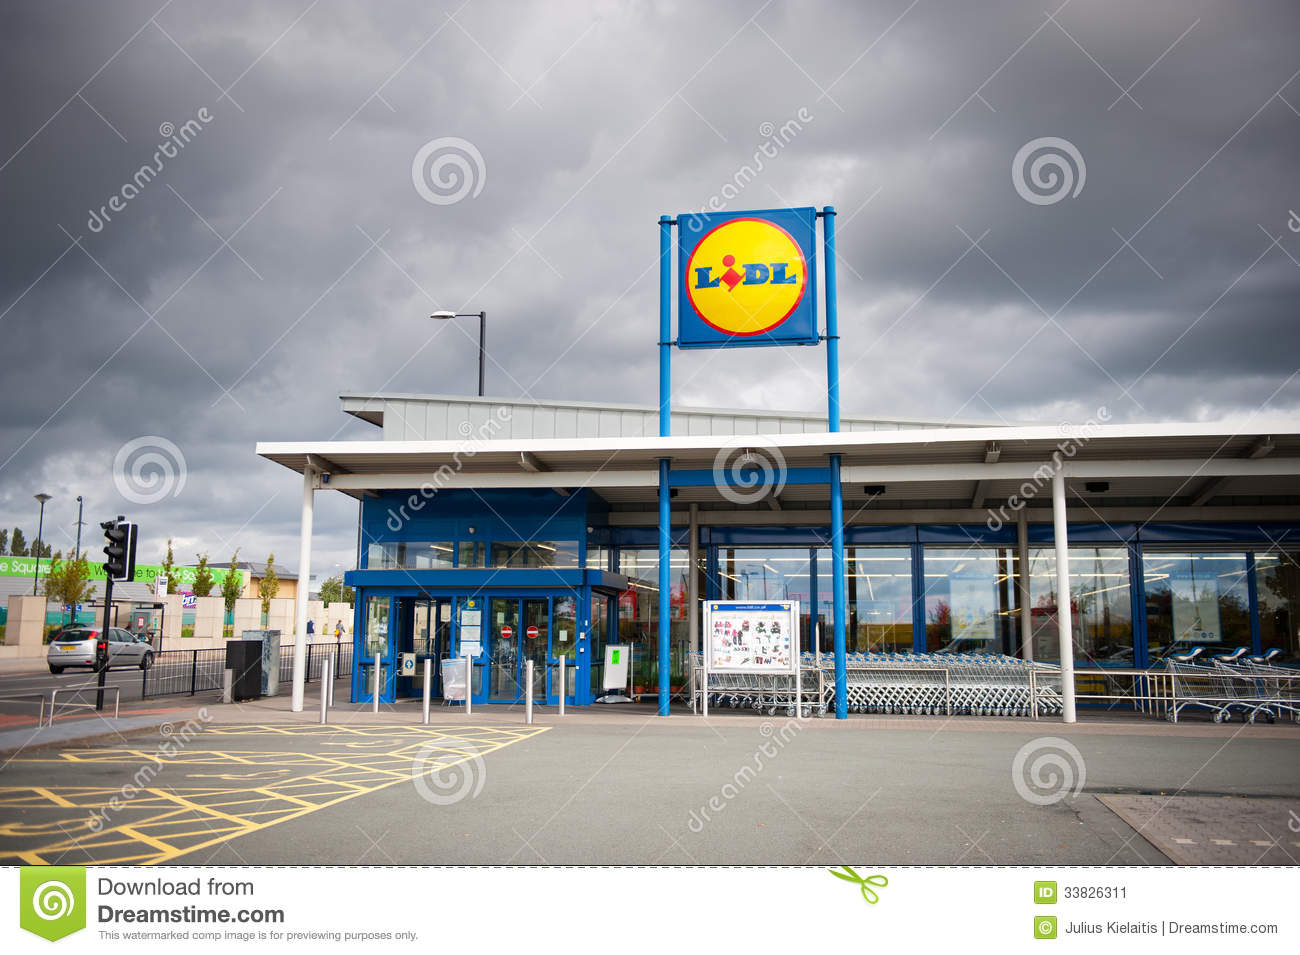 Colander Lidl Store In Manchester, Uk Editorial Photo - Image: 33826311